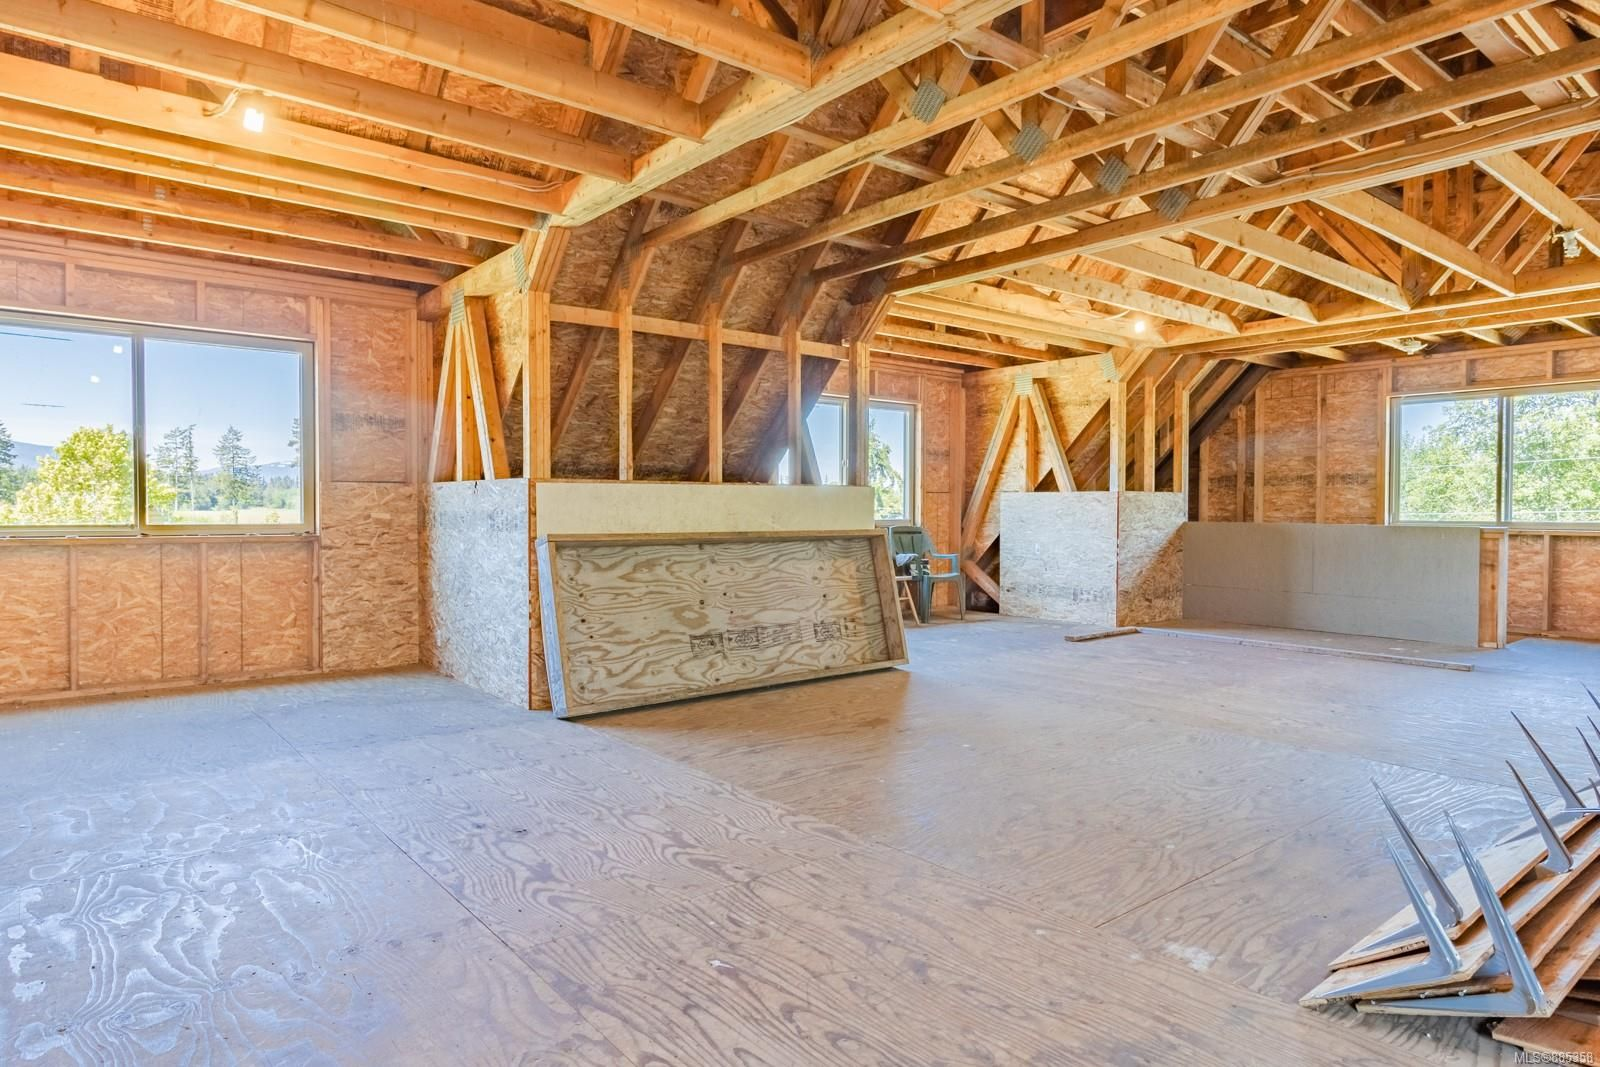 Photo 60: Photos: 2850 Peters Rd in : PQ Qualicum Beach House for sale (Parksville/Qualicum)  : MLS®# 885358